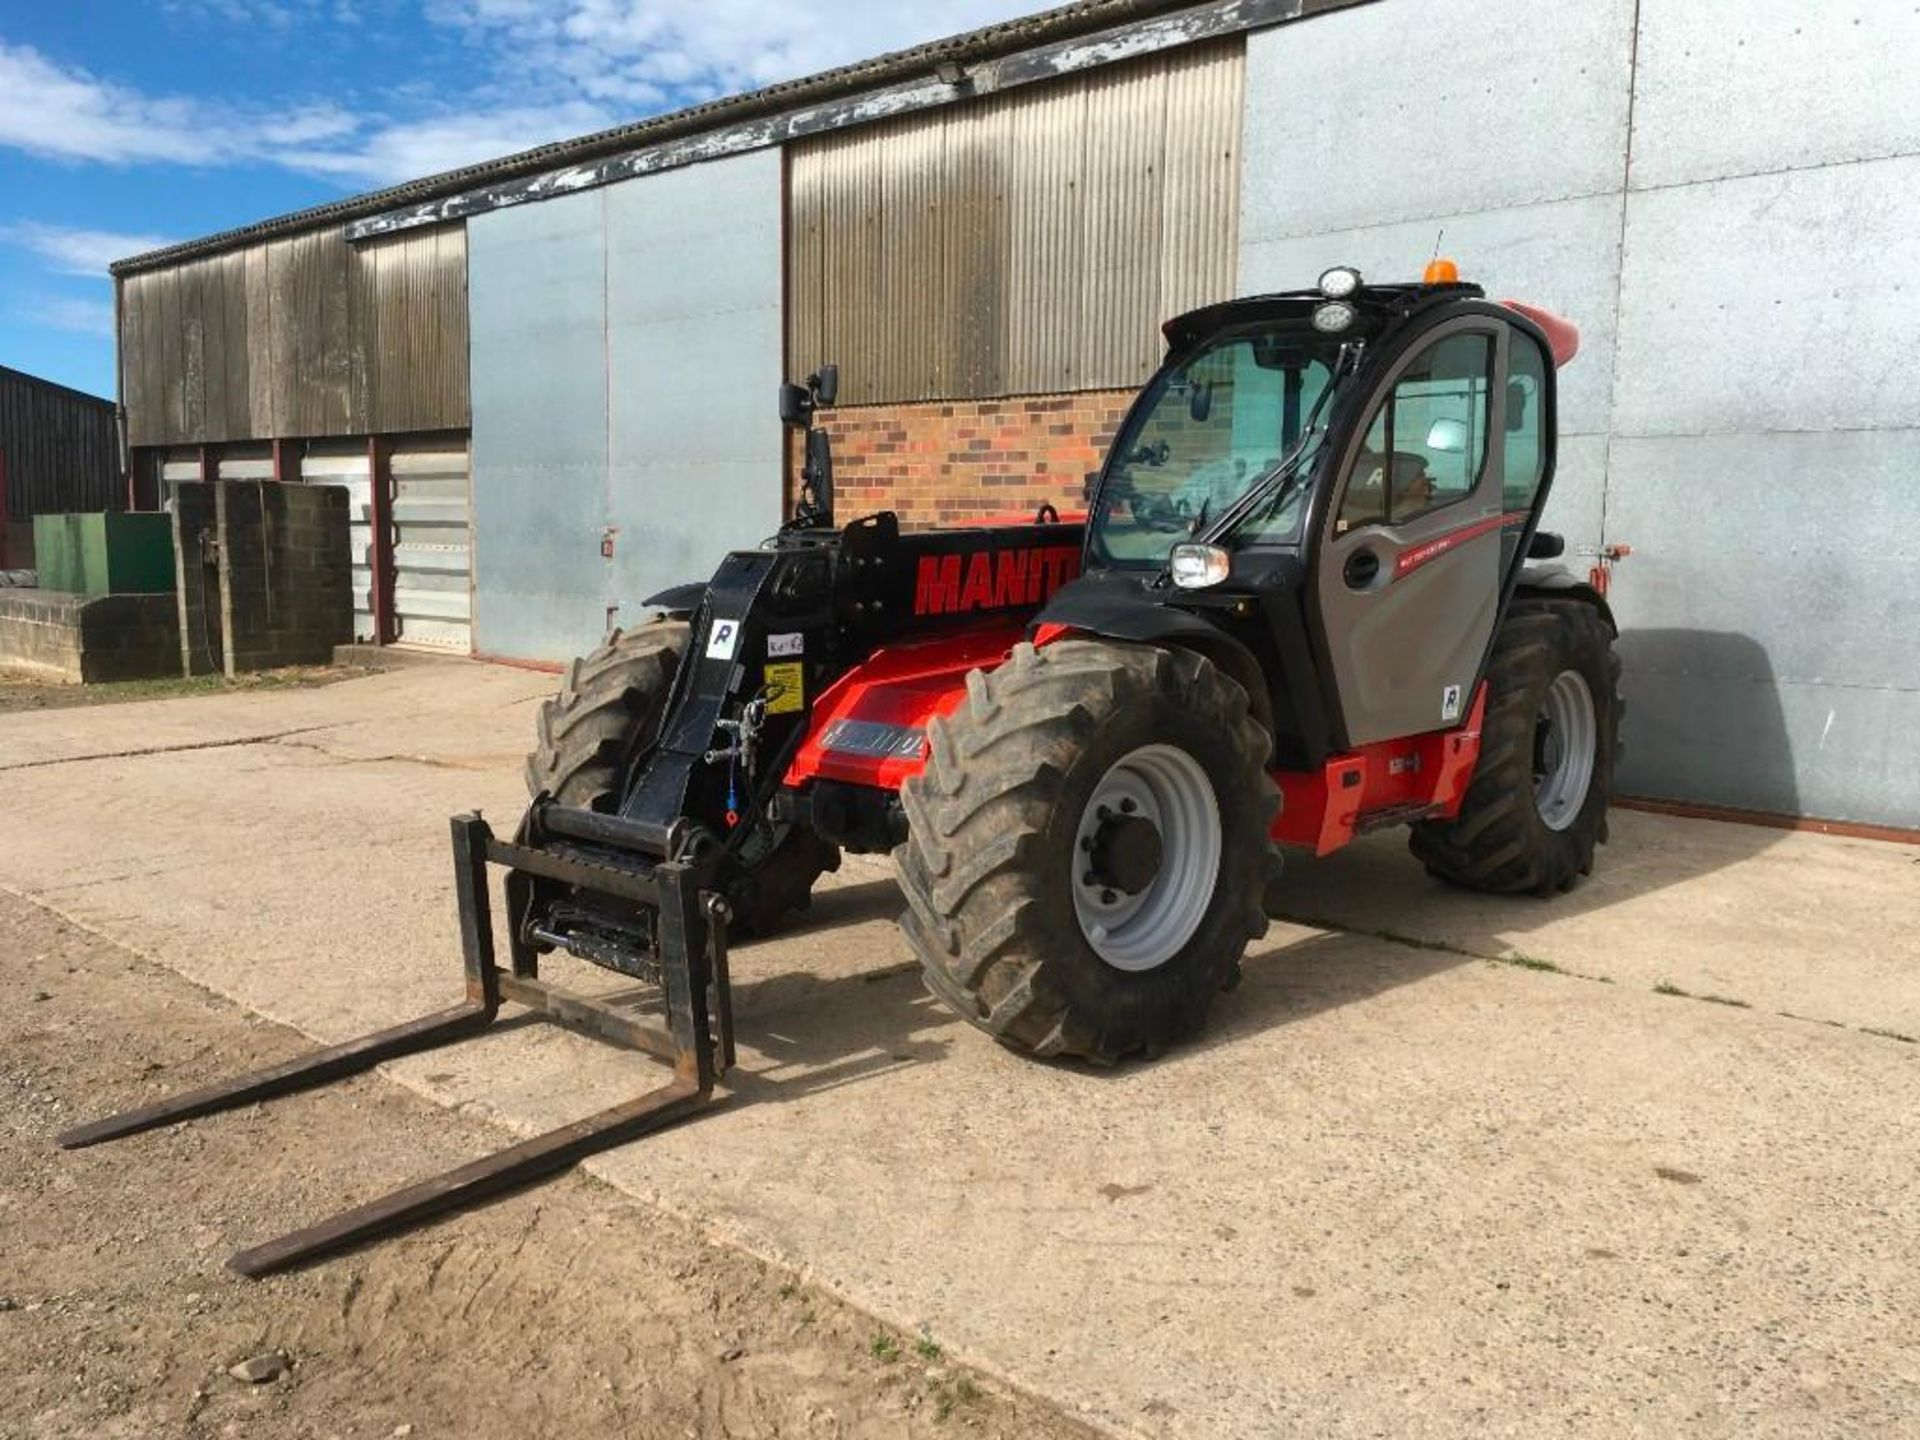 2017 Manitou MLT 737-130 PS+ Elite telehandler with rear pick up hitch, power shift, air seat, elect - Image 6 of 22